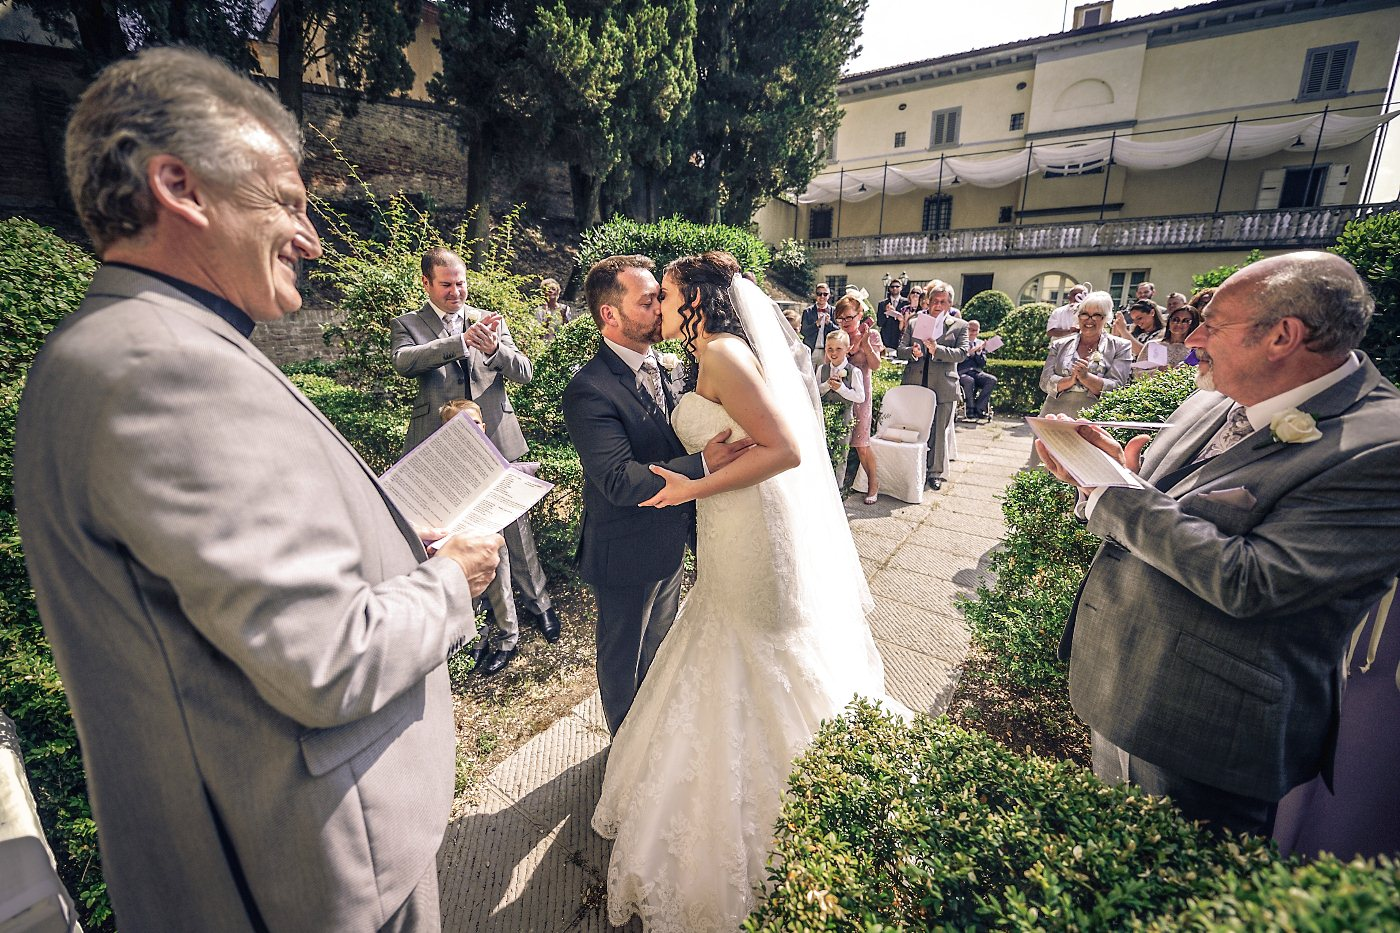 wedding photo villa bucciano_10.jpg